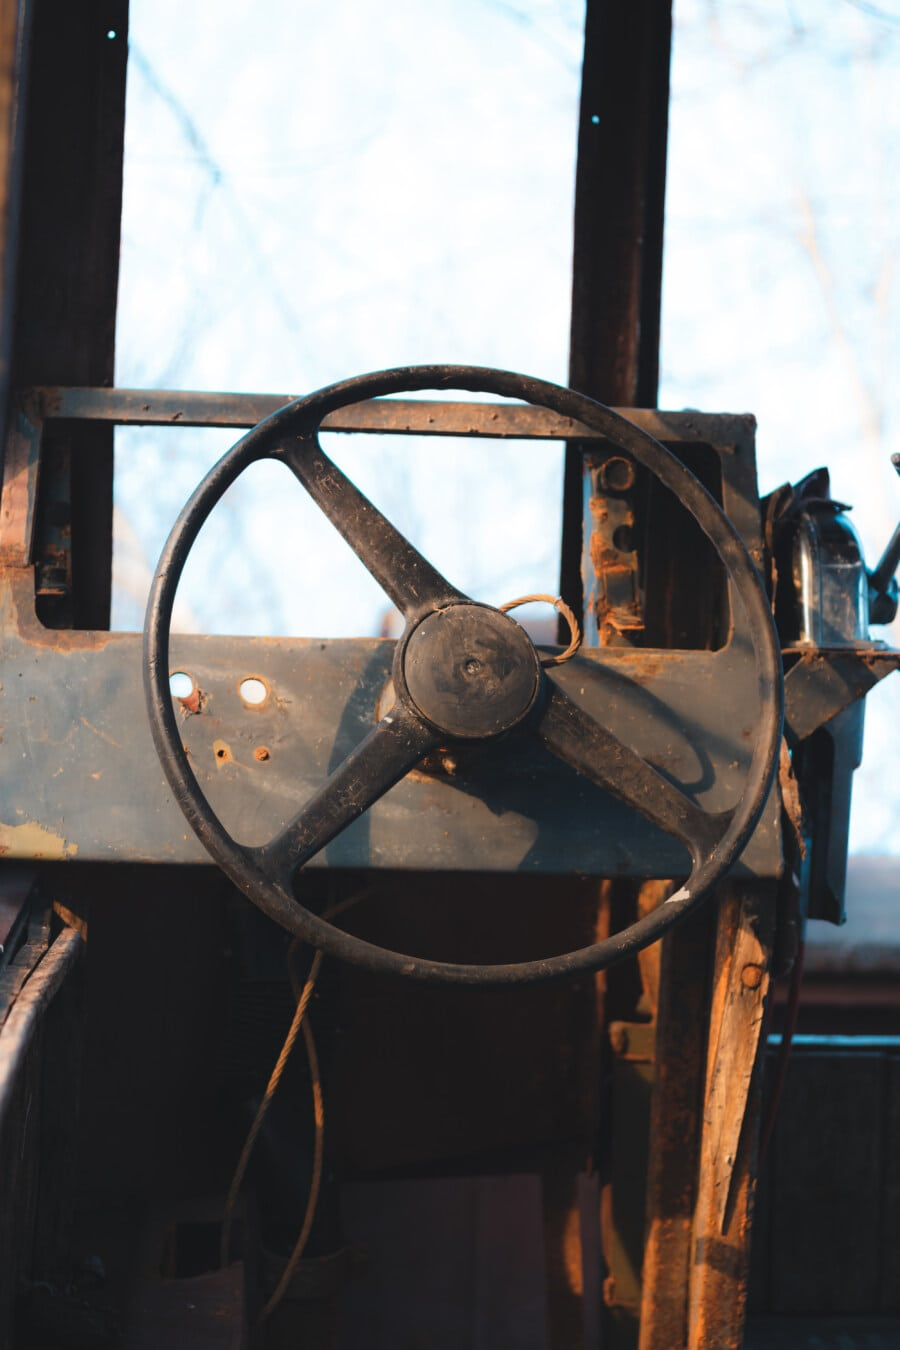 steering wheel, abandoned, shipwreck, ship, decay, dashboard, old, control, device, mechanism